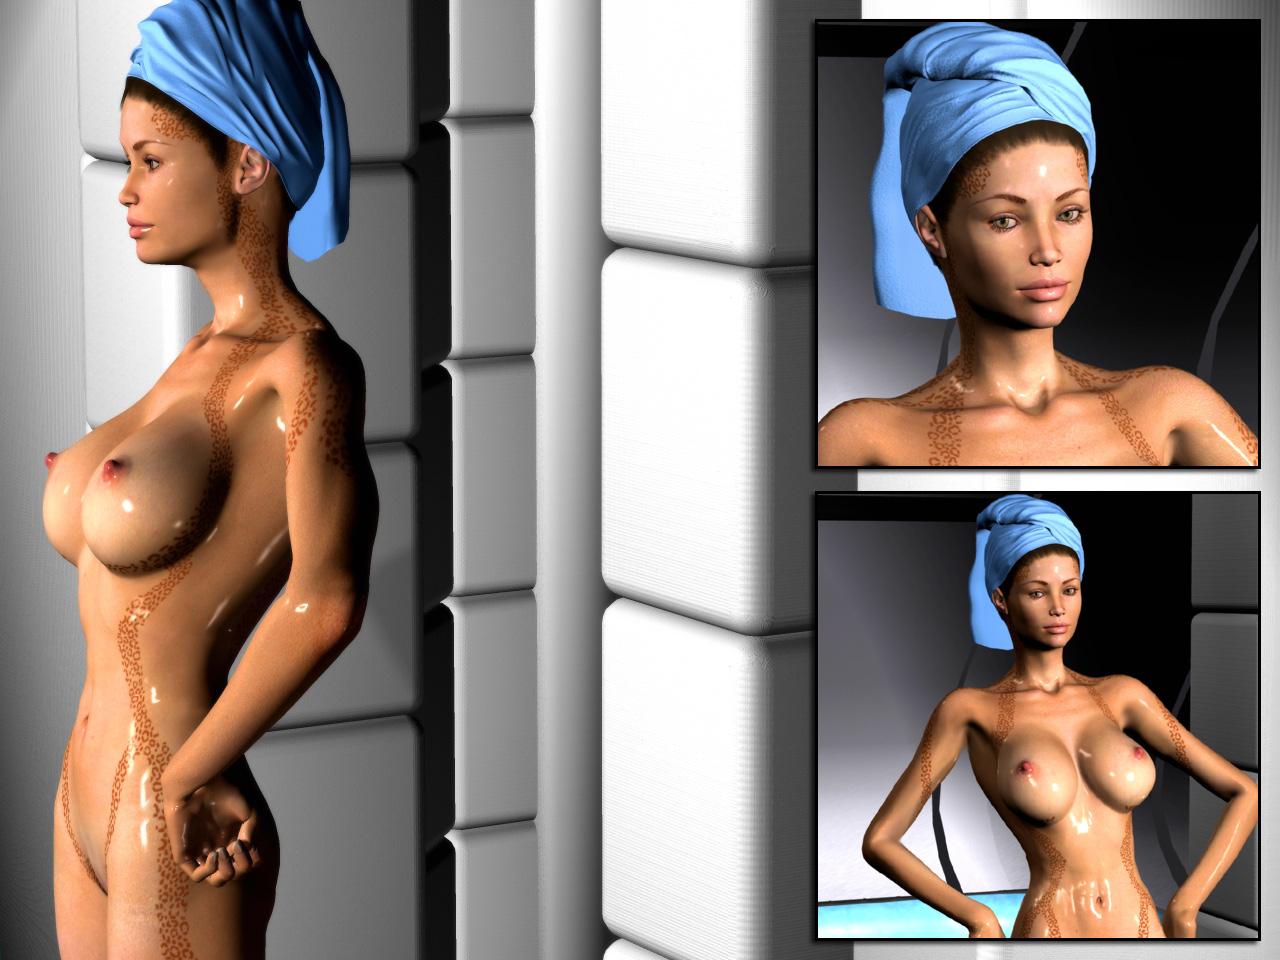 Think, the in nude the women star of trek too